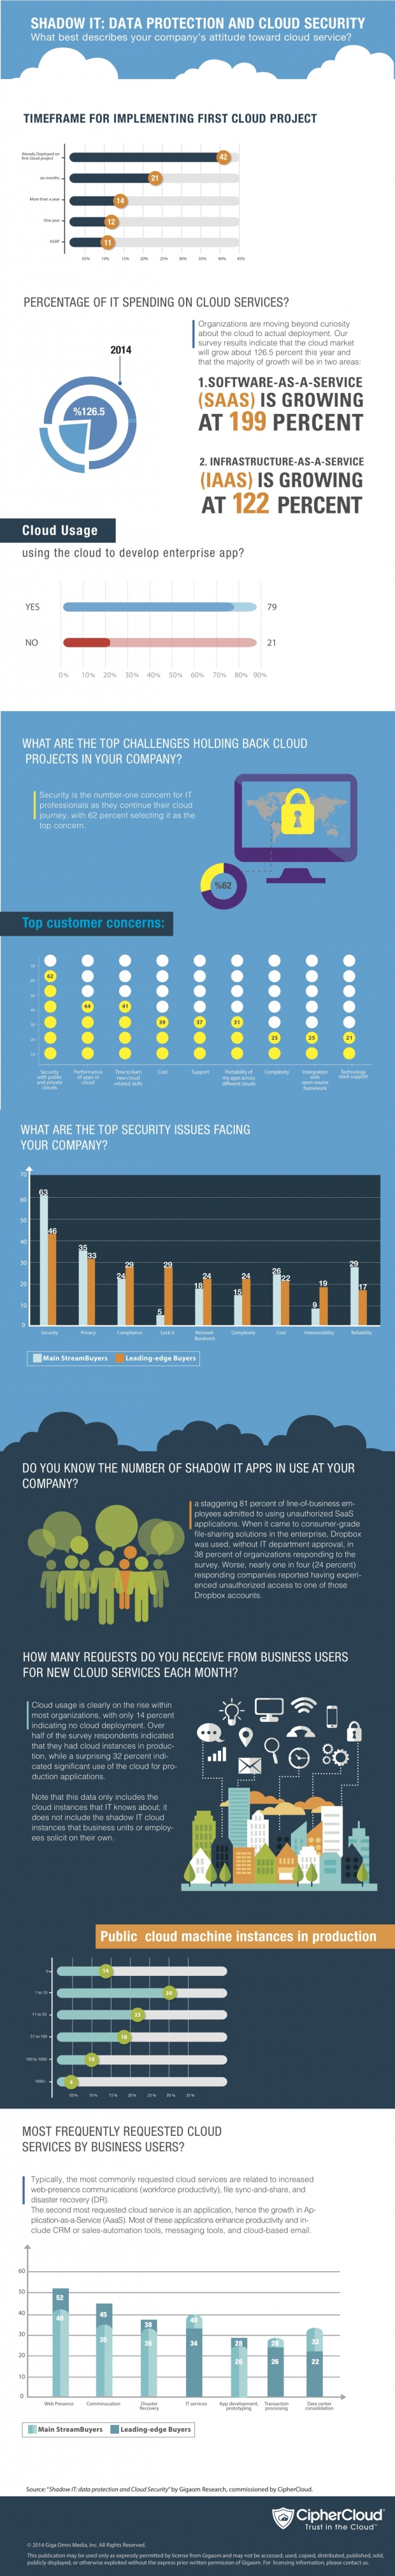 Shadow_IT_Cloud_Data_Security_Gigaom_Report-e1416608227367